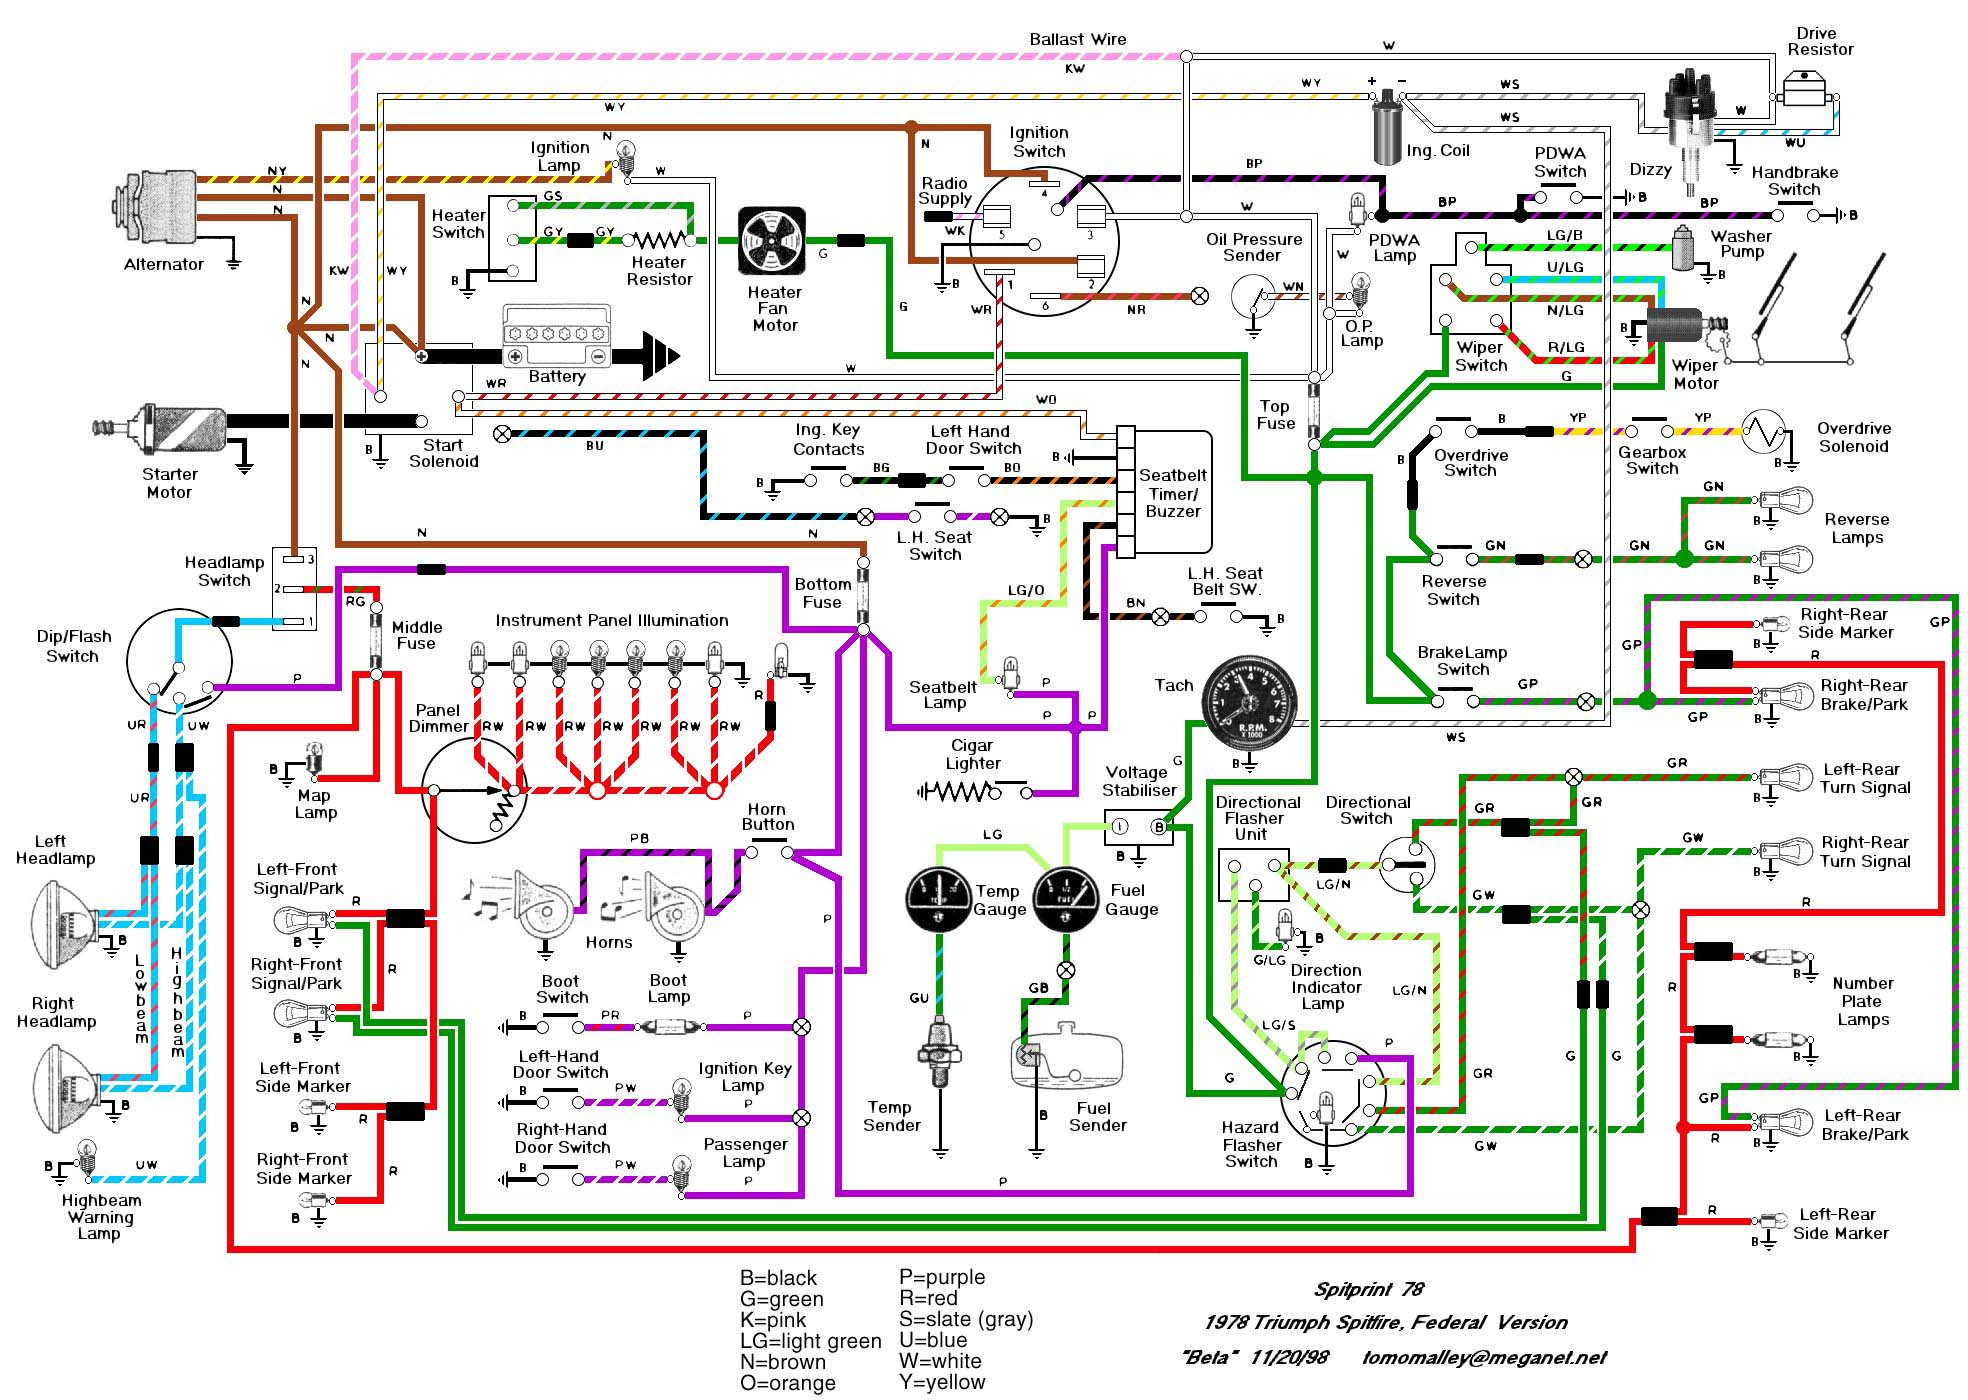 78diagram mk4 wiring diagram mk4 tdi wiring diagram \u2022 wiring diagrams j 1965 mercedes 220s wiring diagram at bayanpartner.co